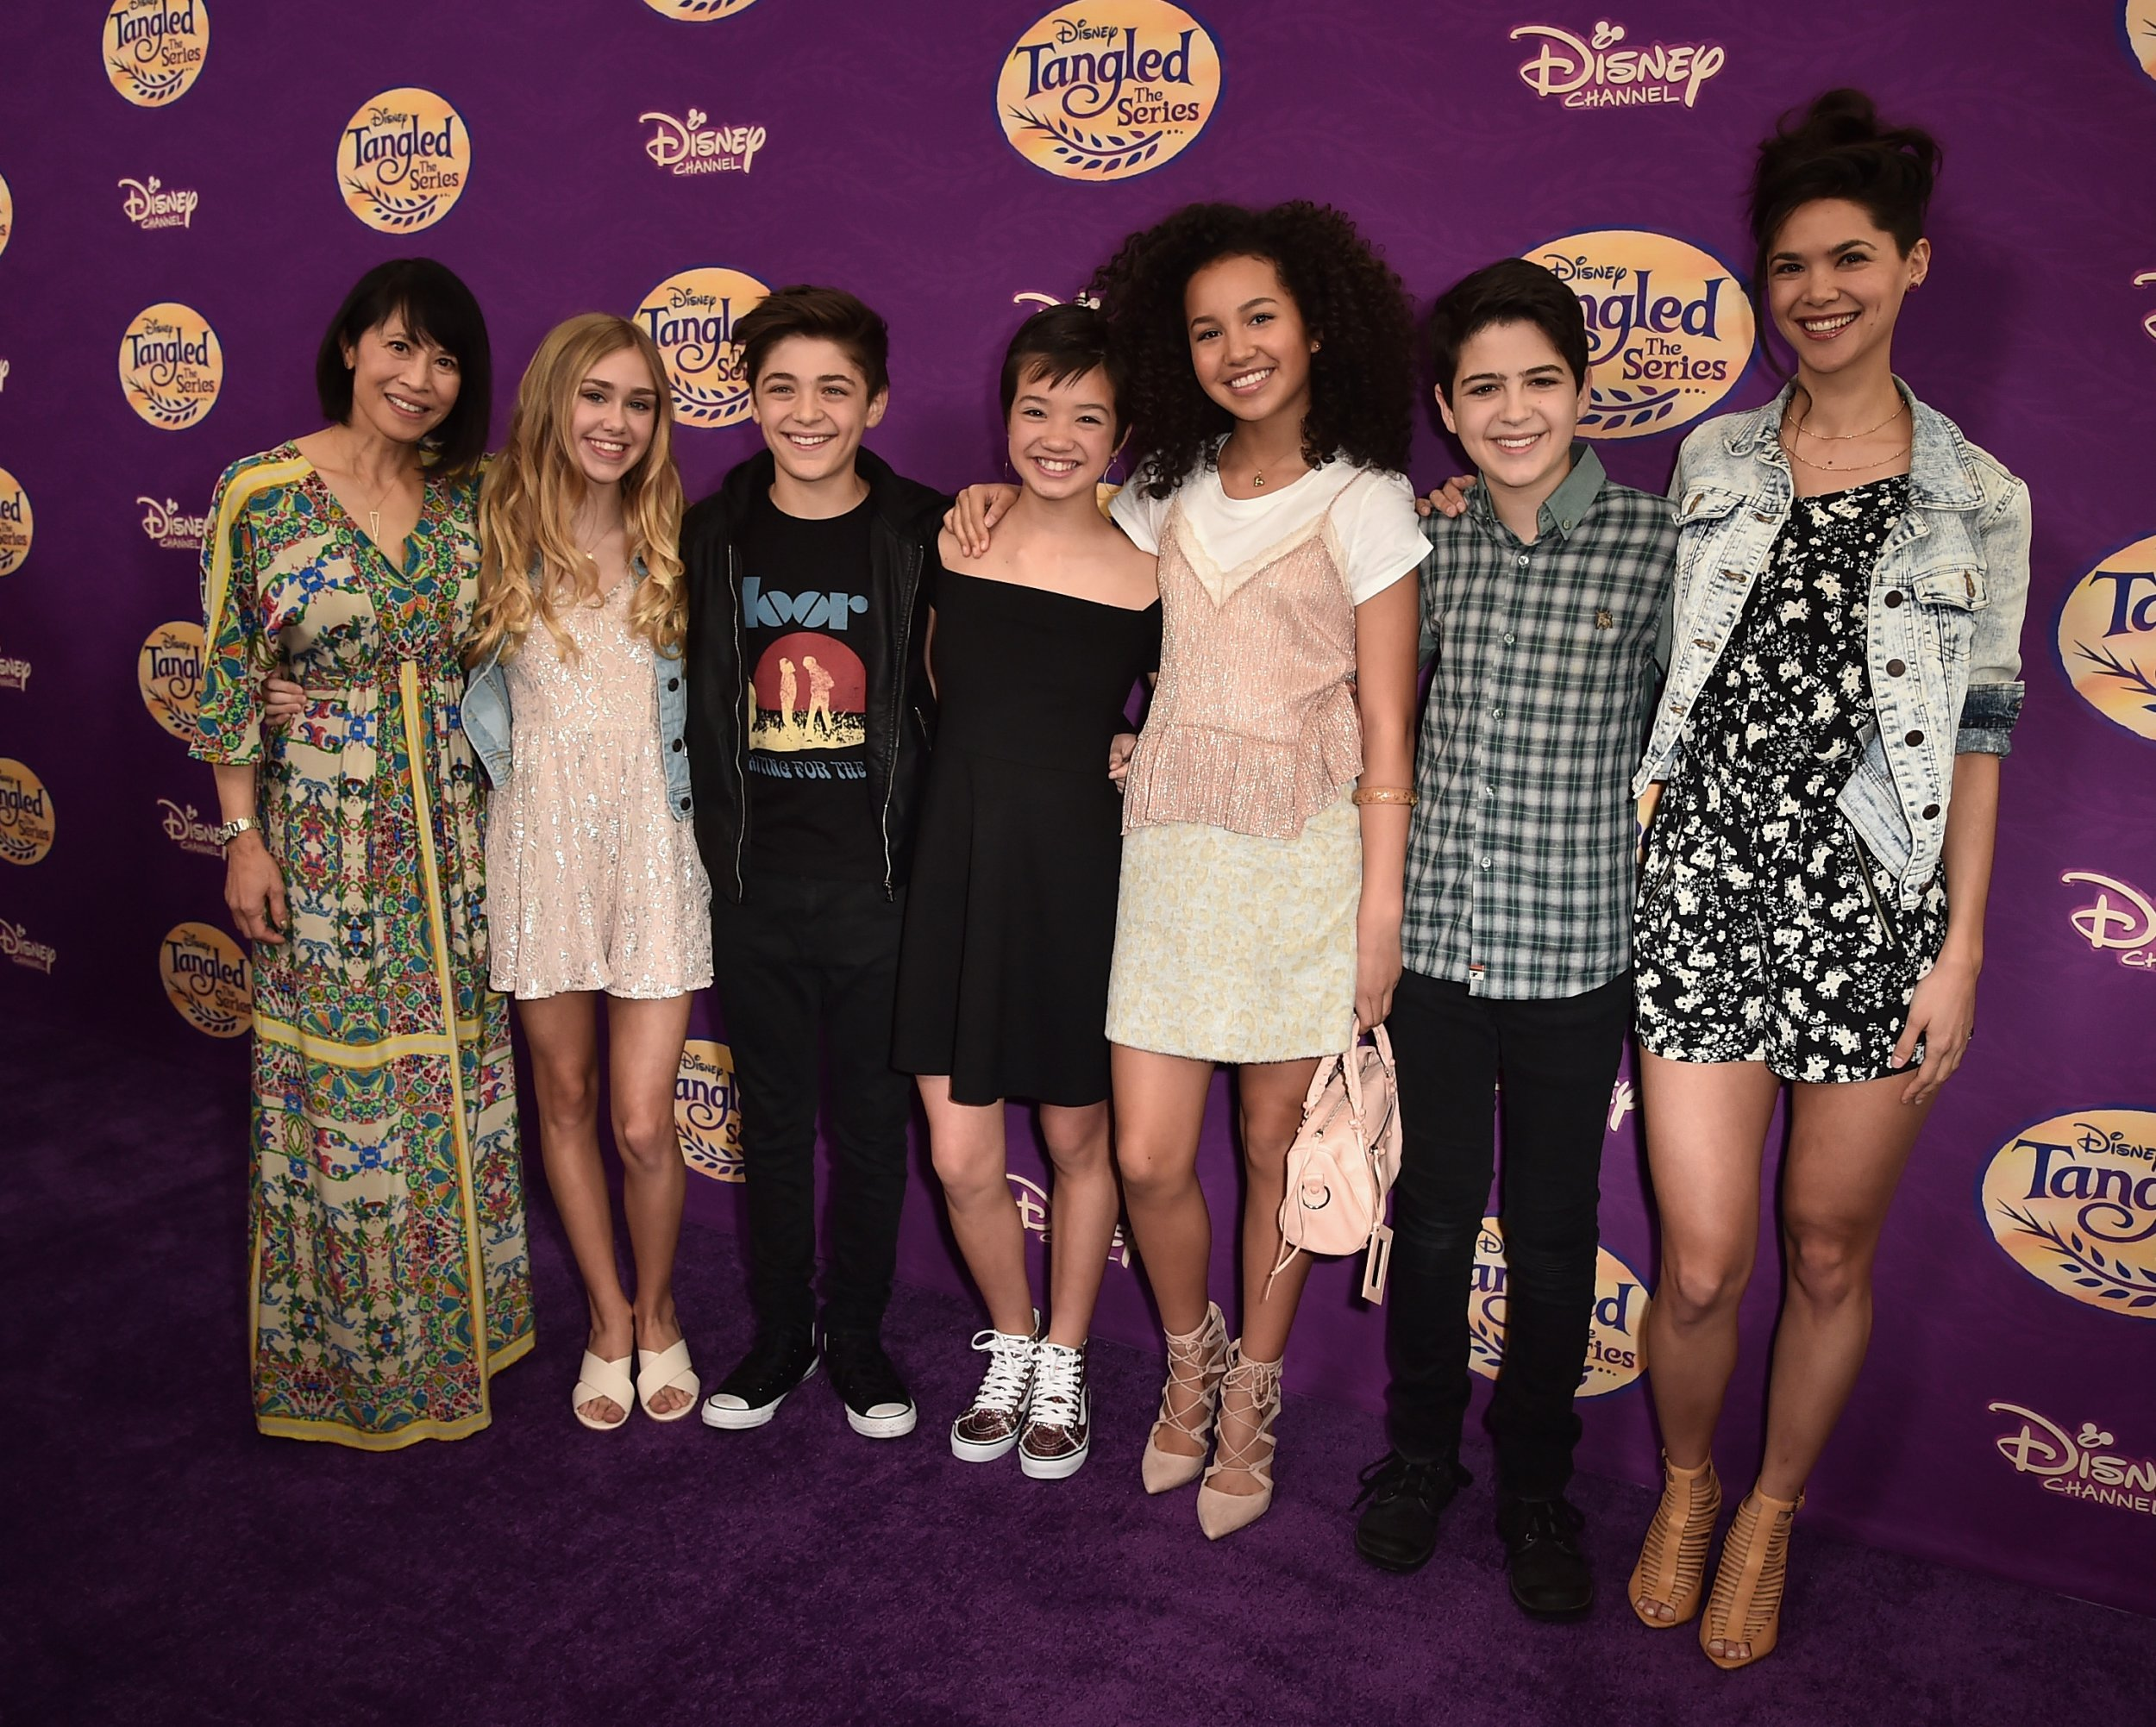 Andi Mack Cast Together At Tangled Premire